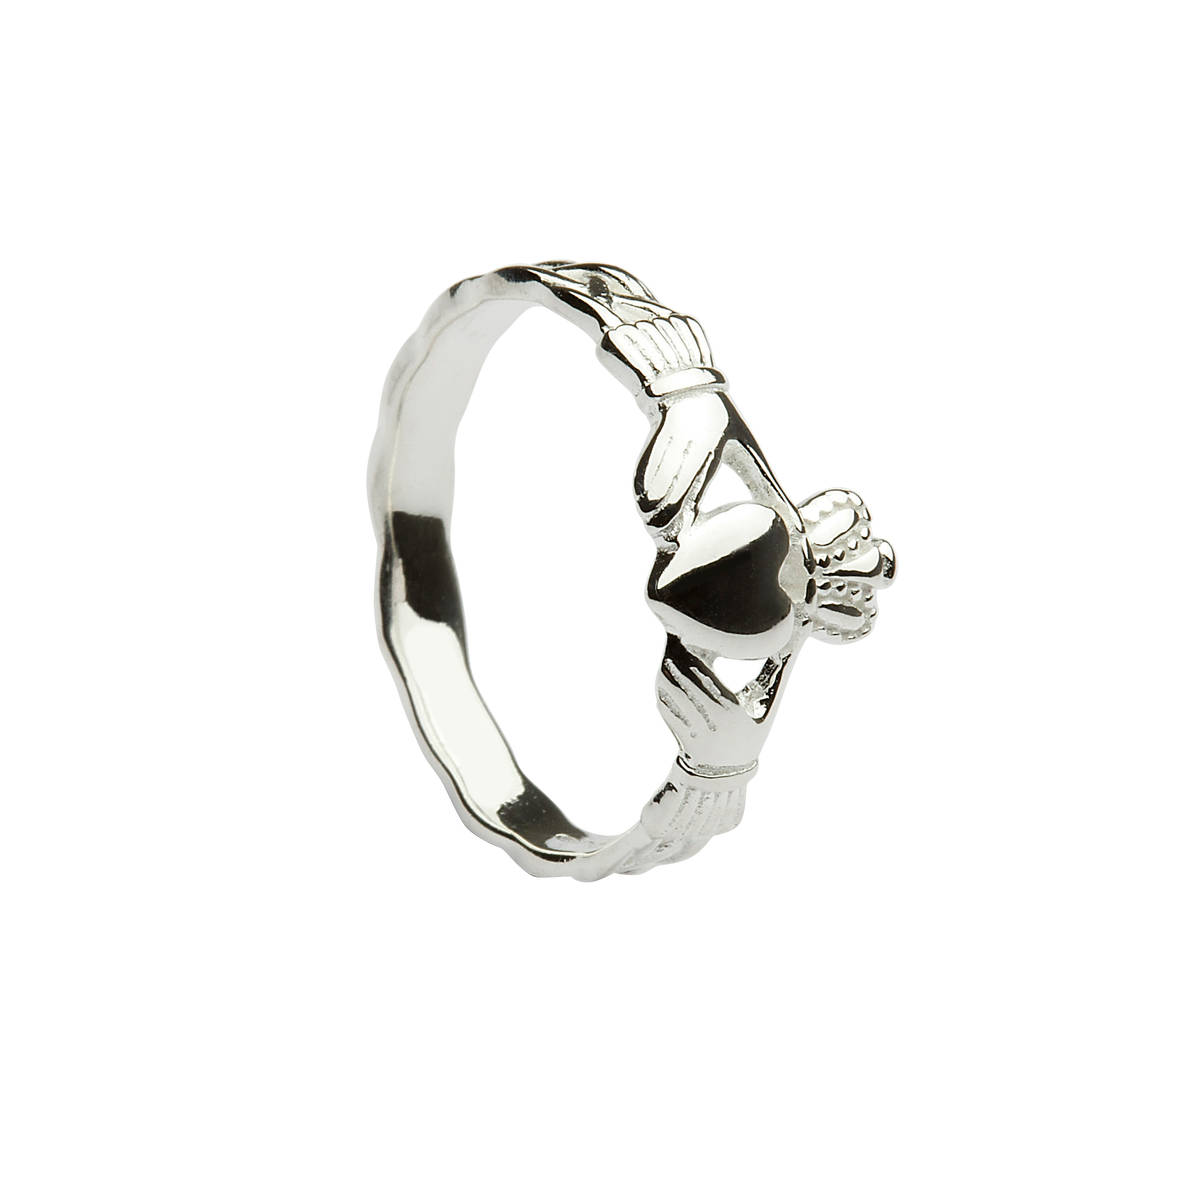 Silver maiden's braided claddagh traditional ring